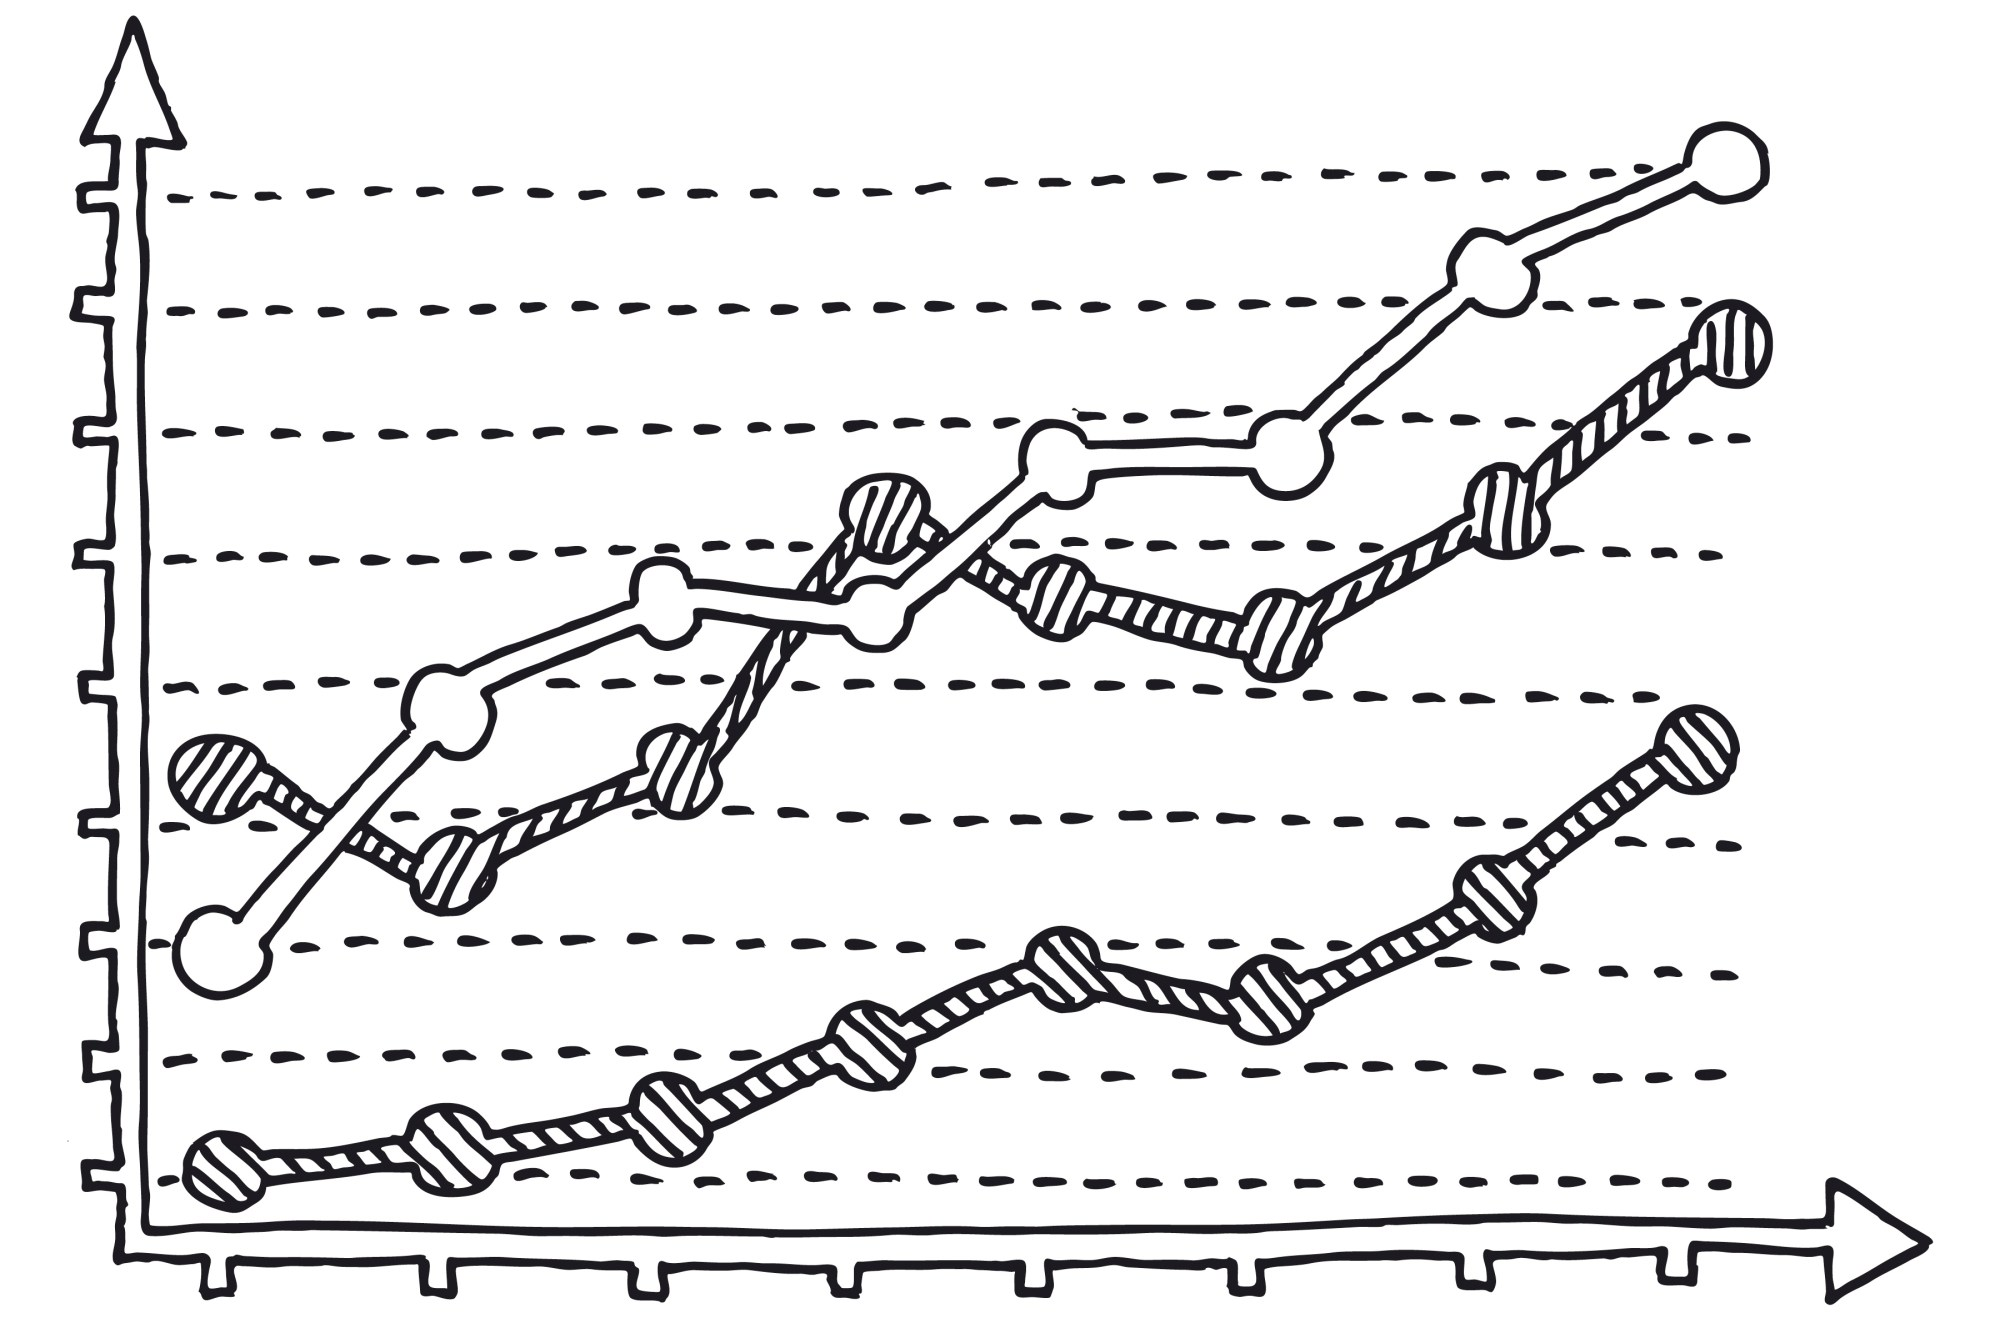 hight resolution of graph chart diagram drawing